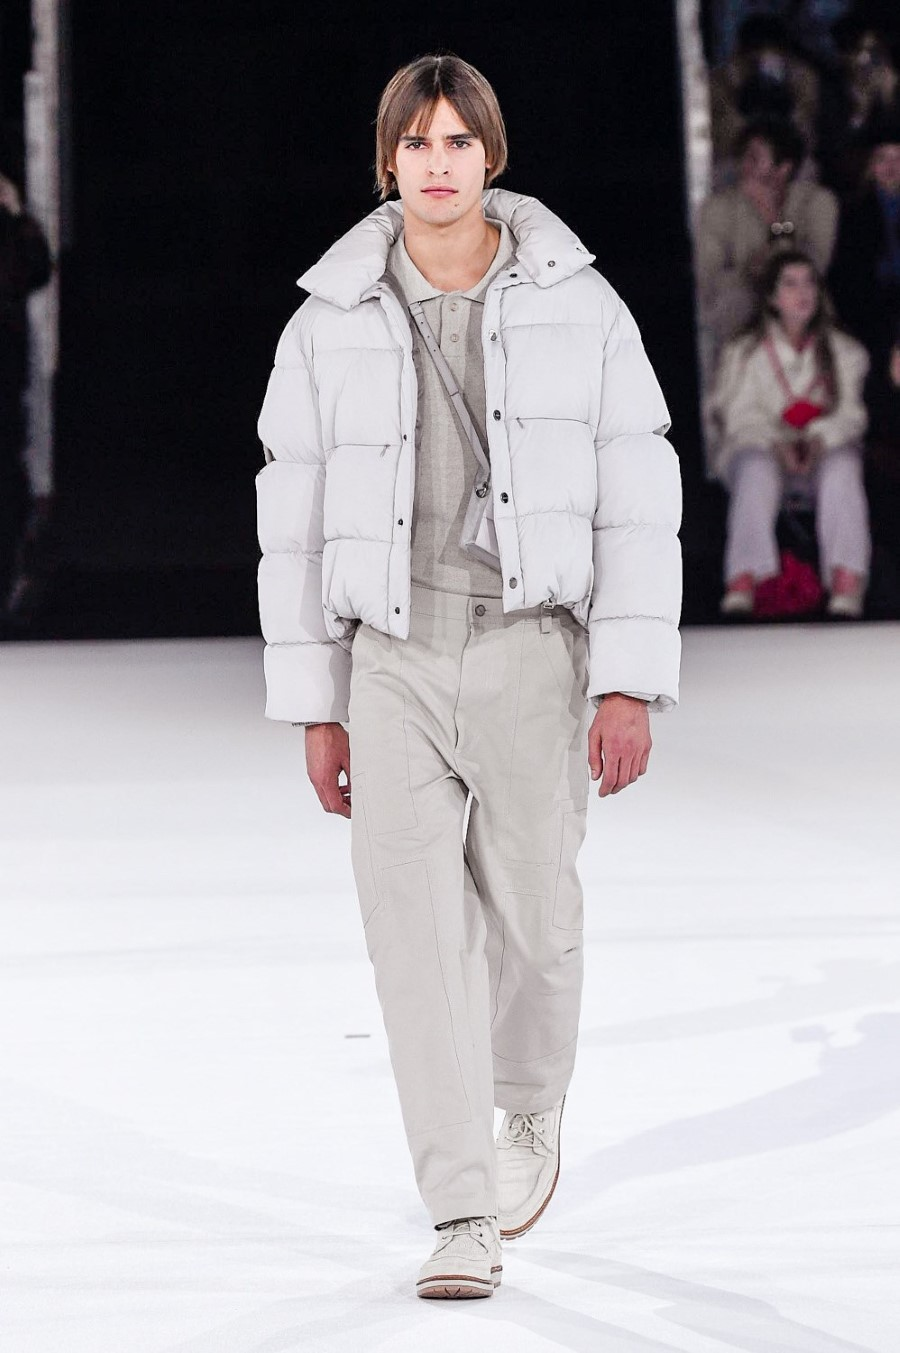 Jacquemus - Fall Winter 2020 - Paris Fashion Week Men's